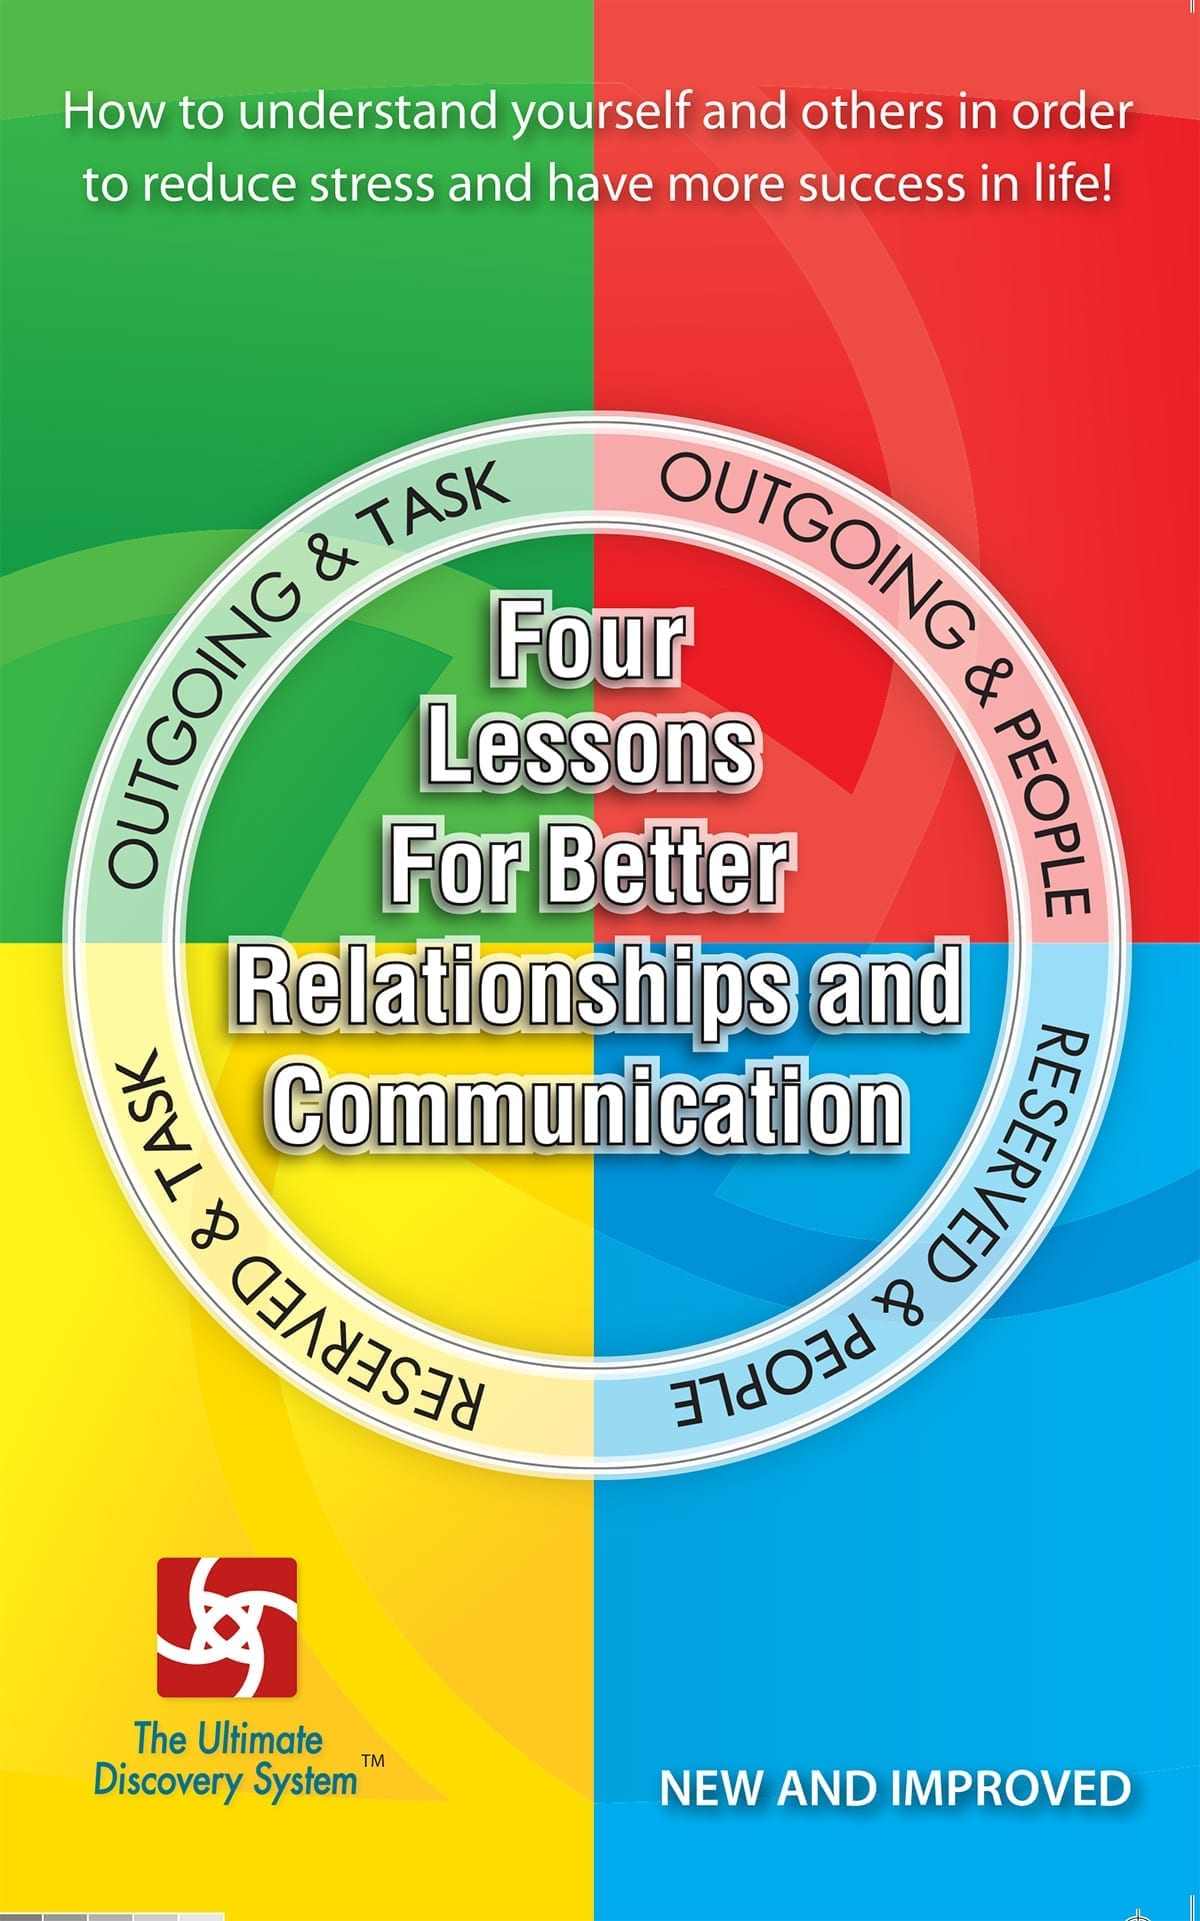 Four Lessons On Building Better Relationships